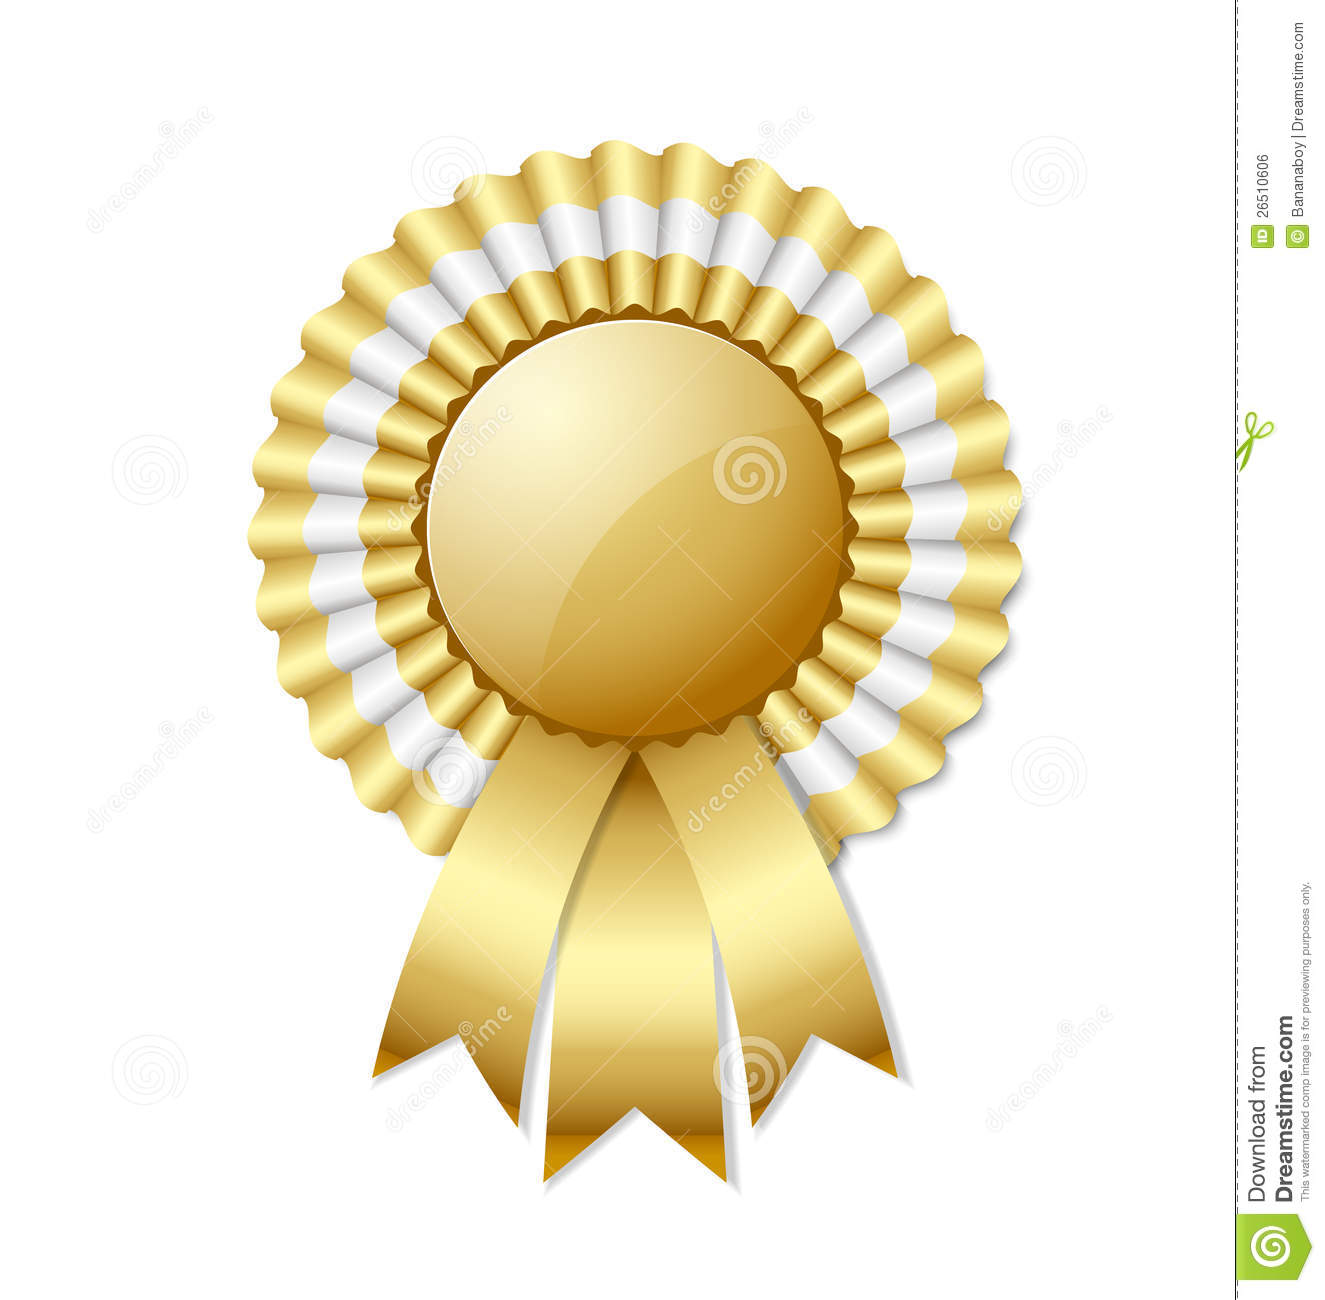 Golden Rosette Royalty Free Stock Image Image 26510606